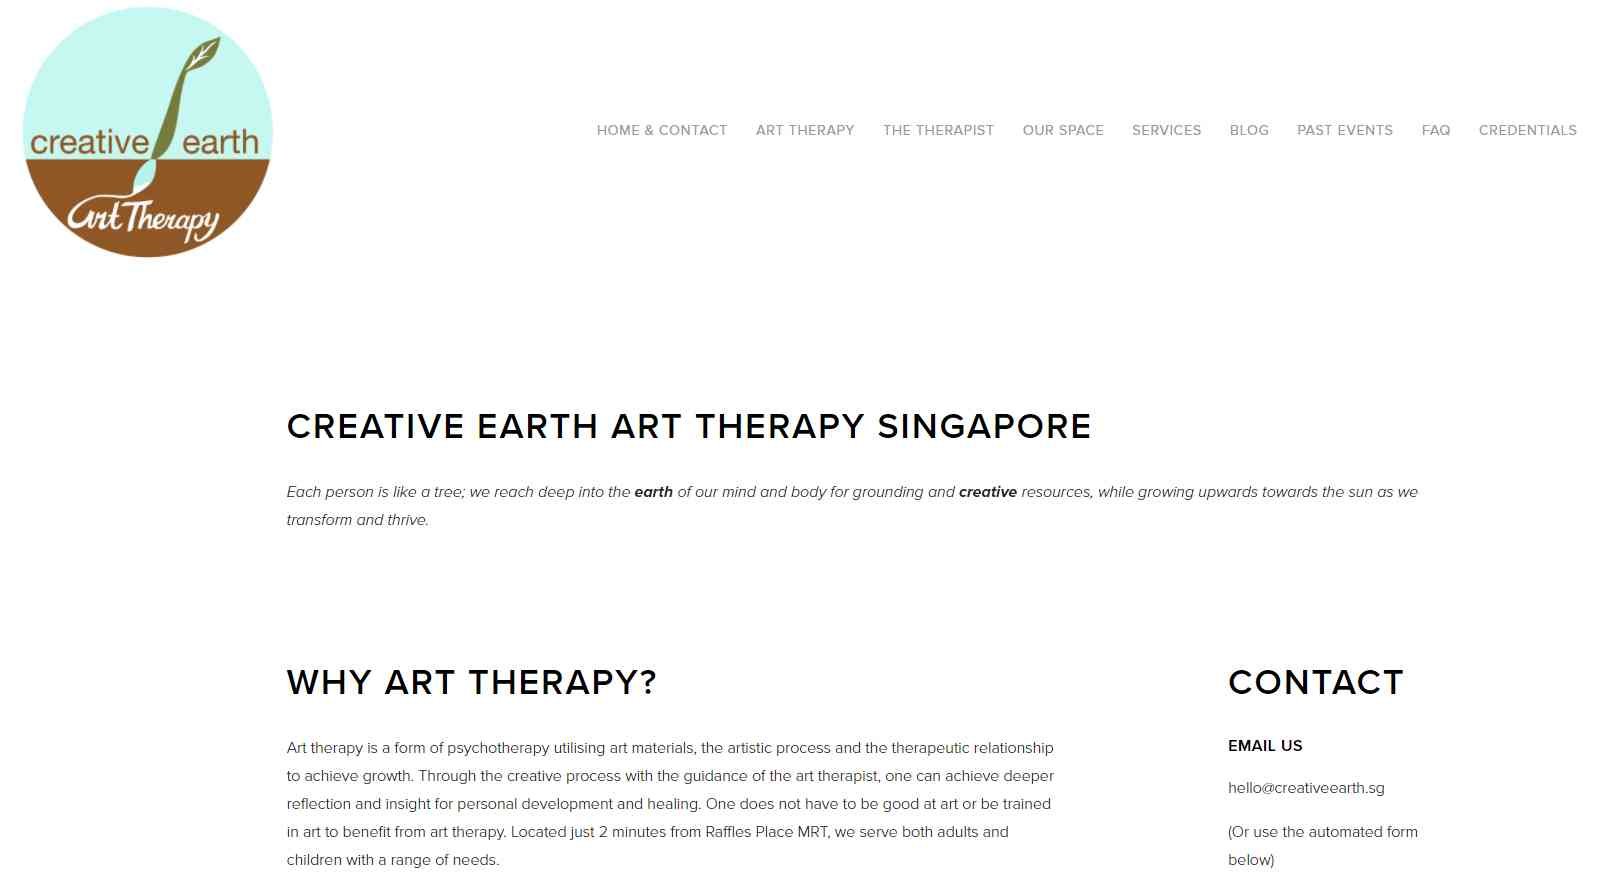 creative earth Top Art Therapy Providers in Singapore